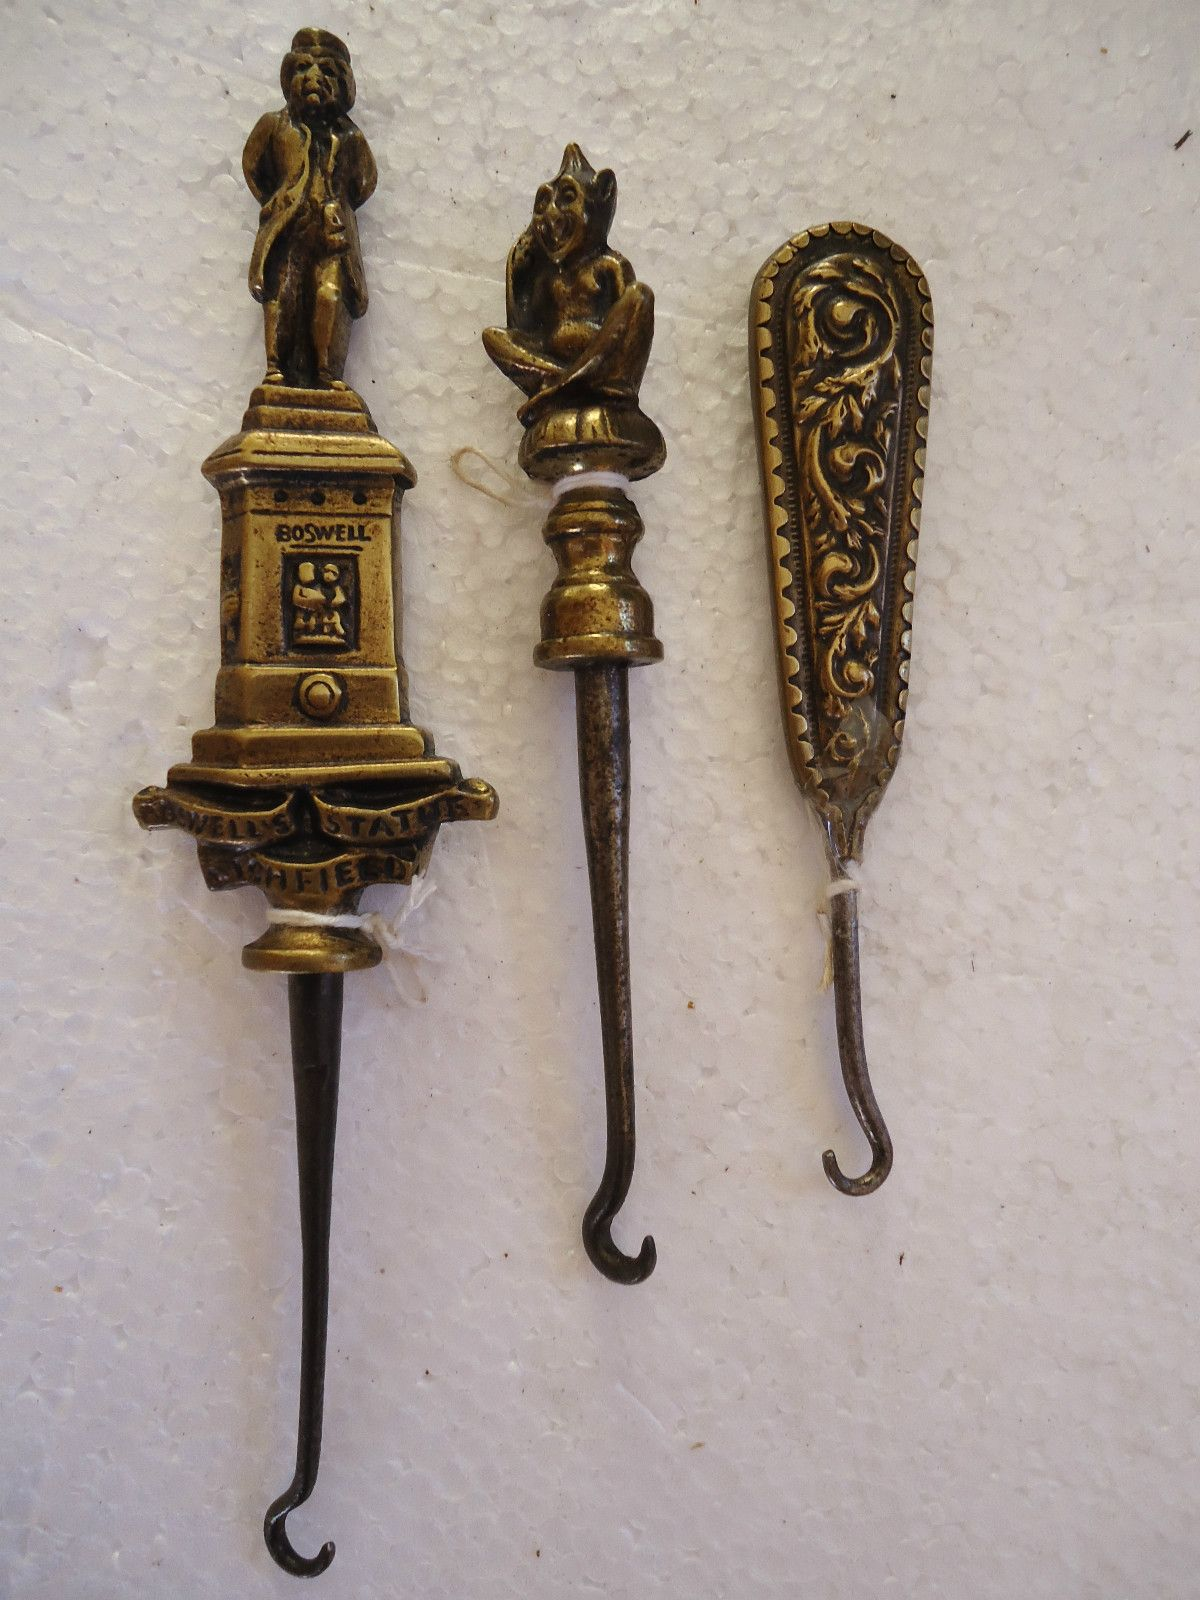 Antique Collectors boot lacer Stamped GROSVENOR AMERITH Ladies Vintage Shoe Button hook Metal Beautiful Green Handle Old Fashion